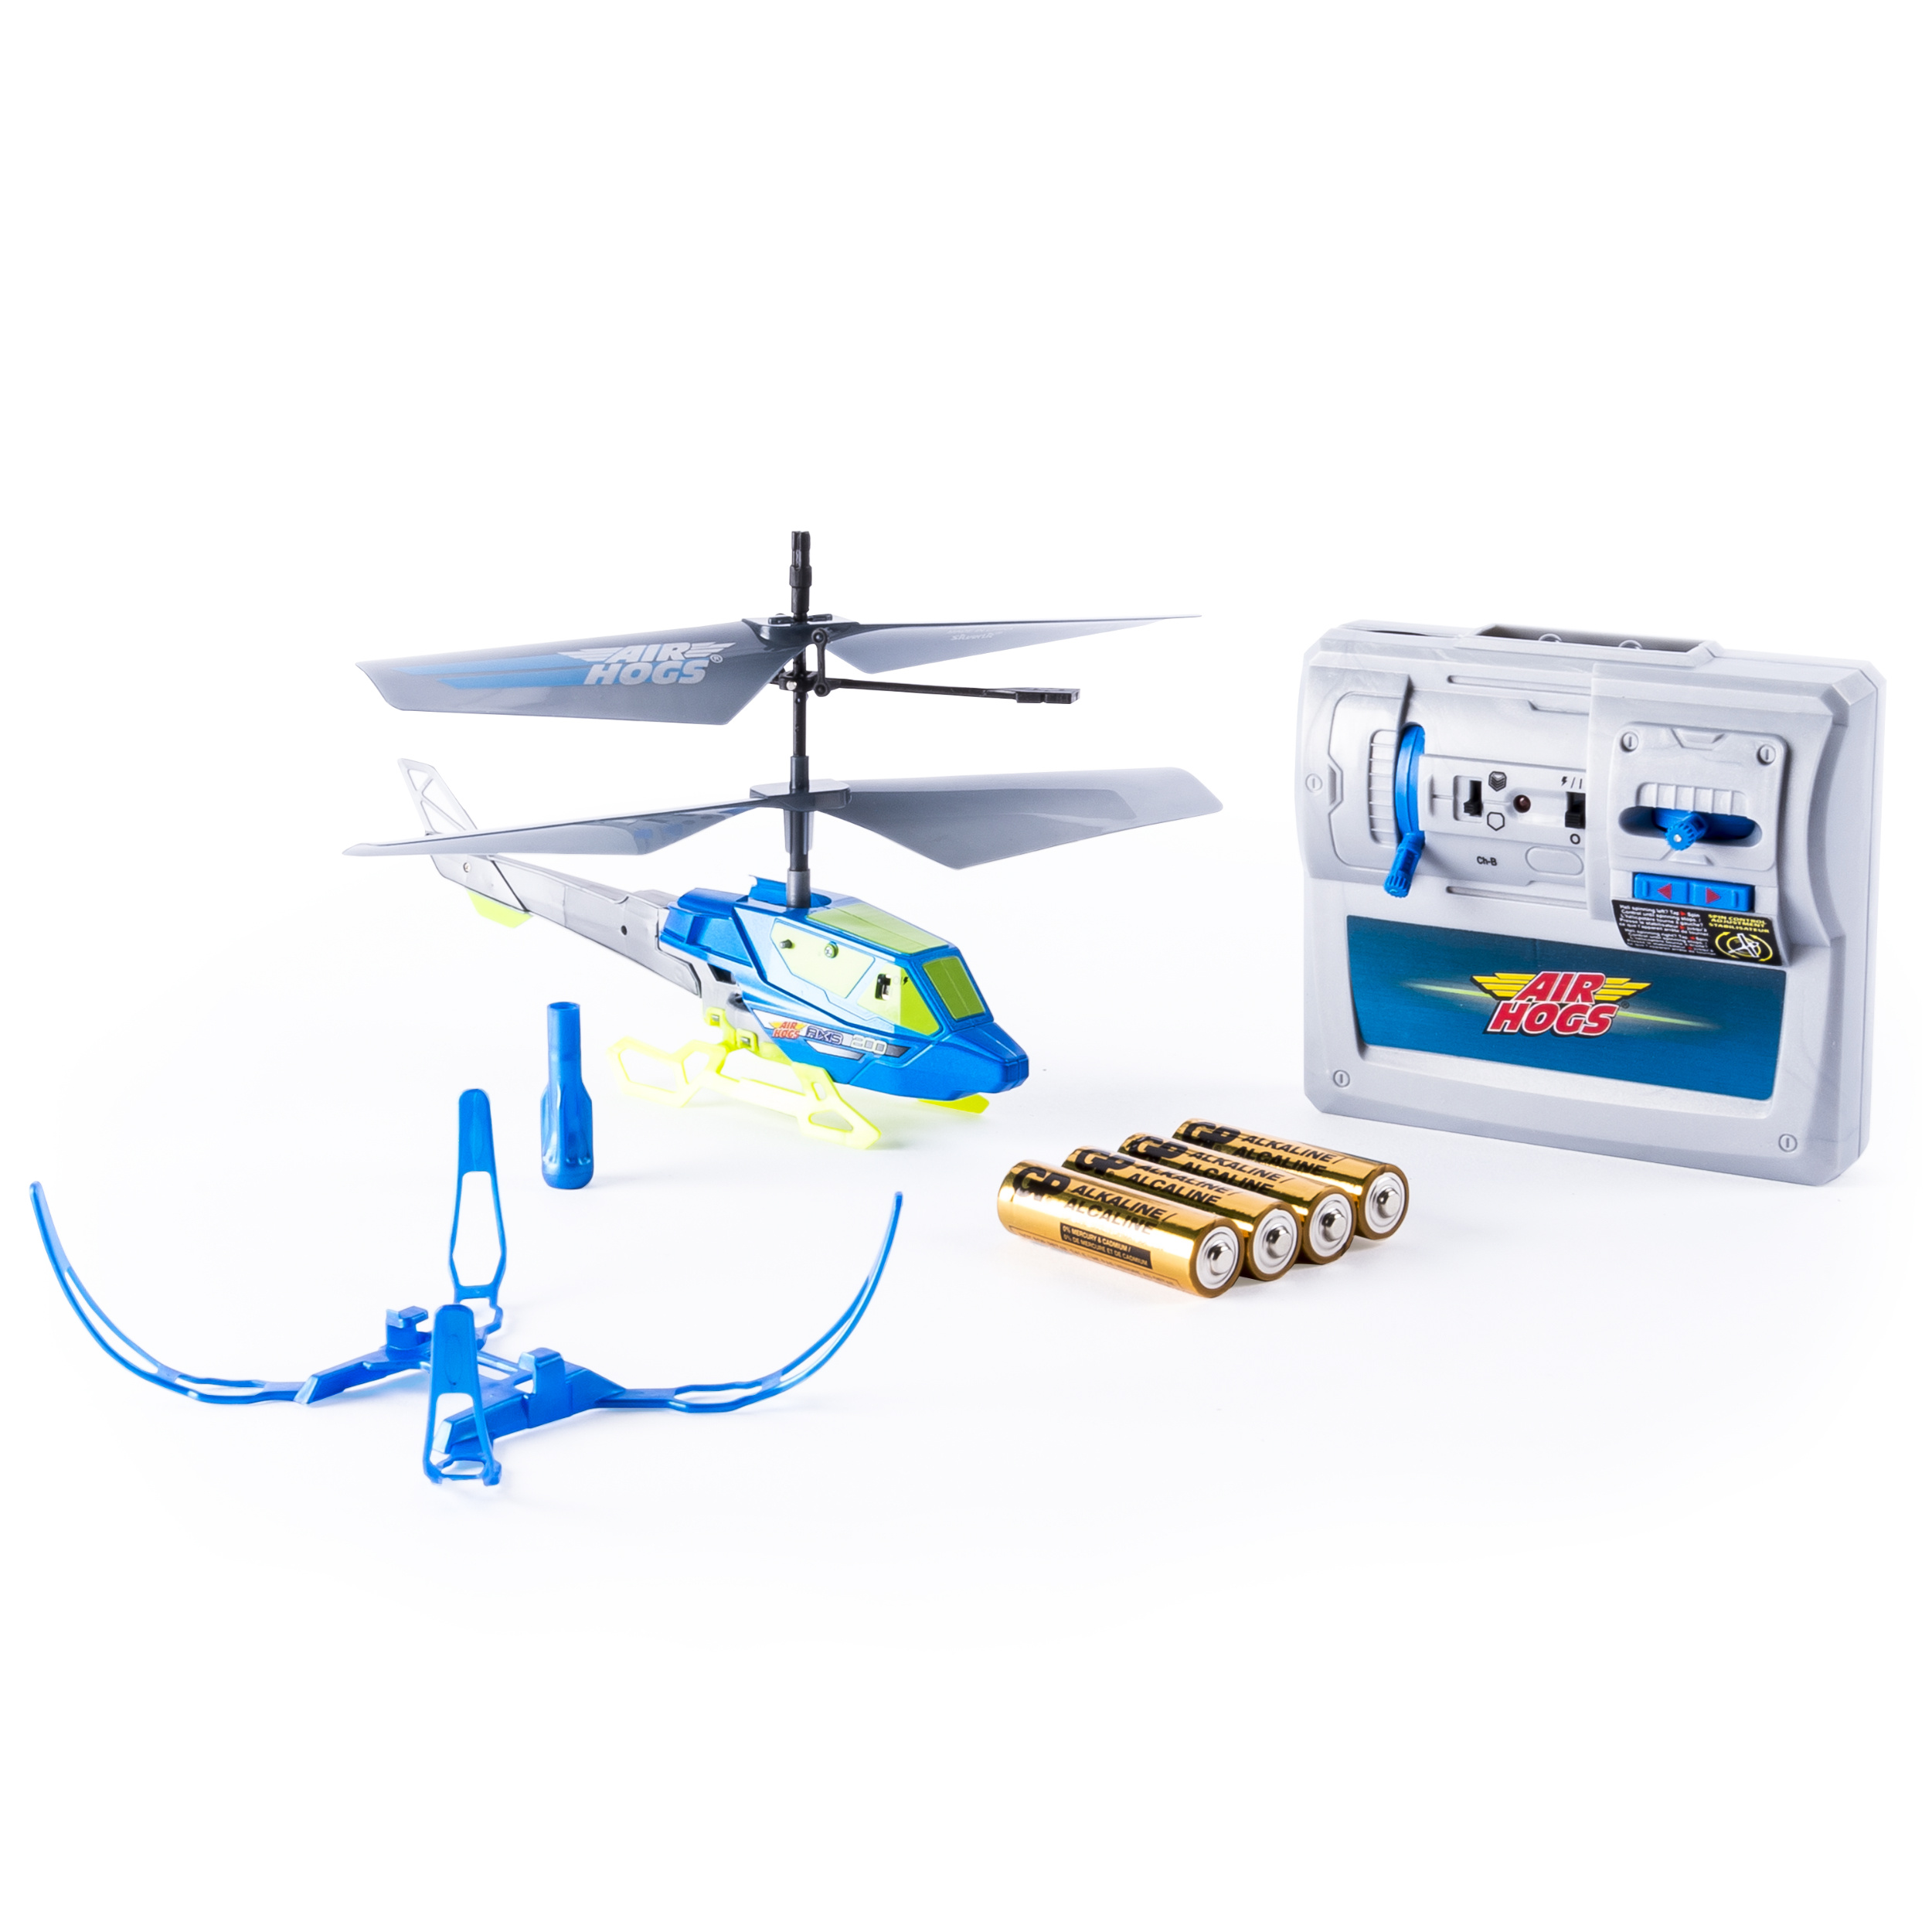 Air Hogs, Axis 200 RC Helicopter With Batteries - Blue